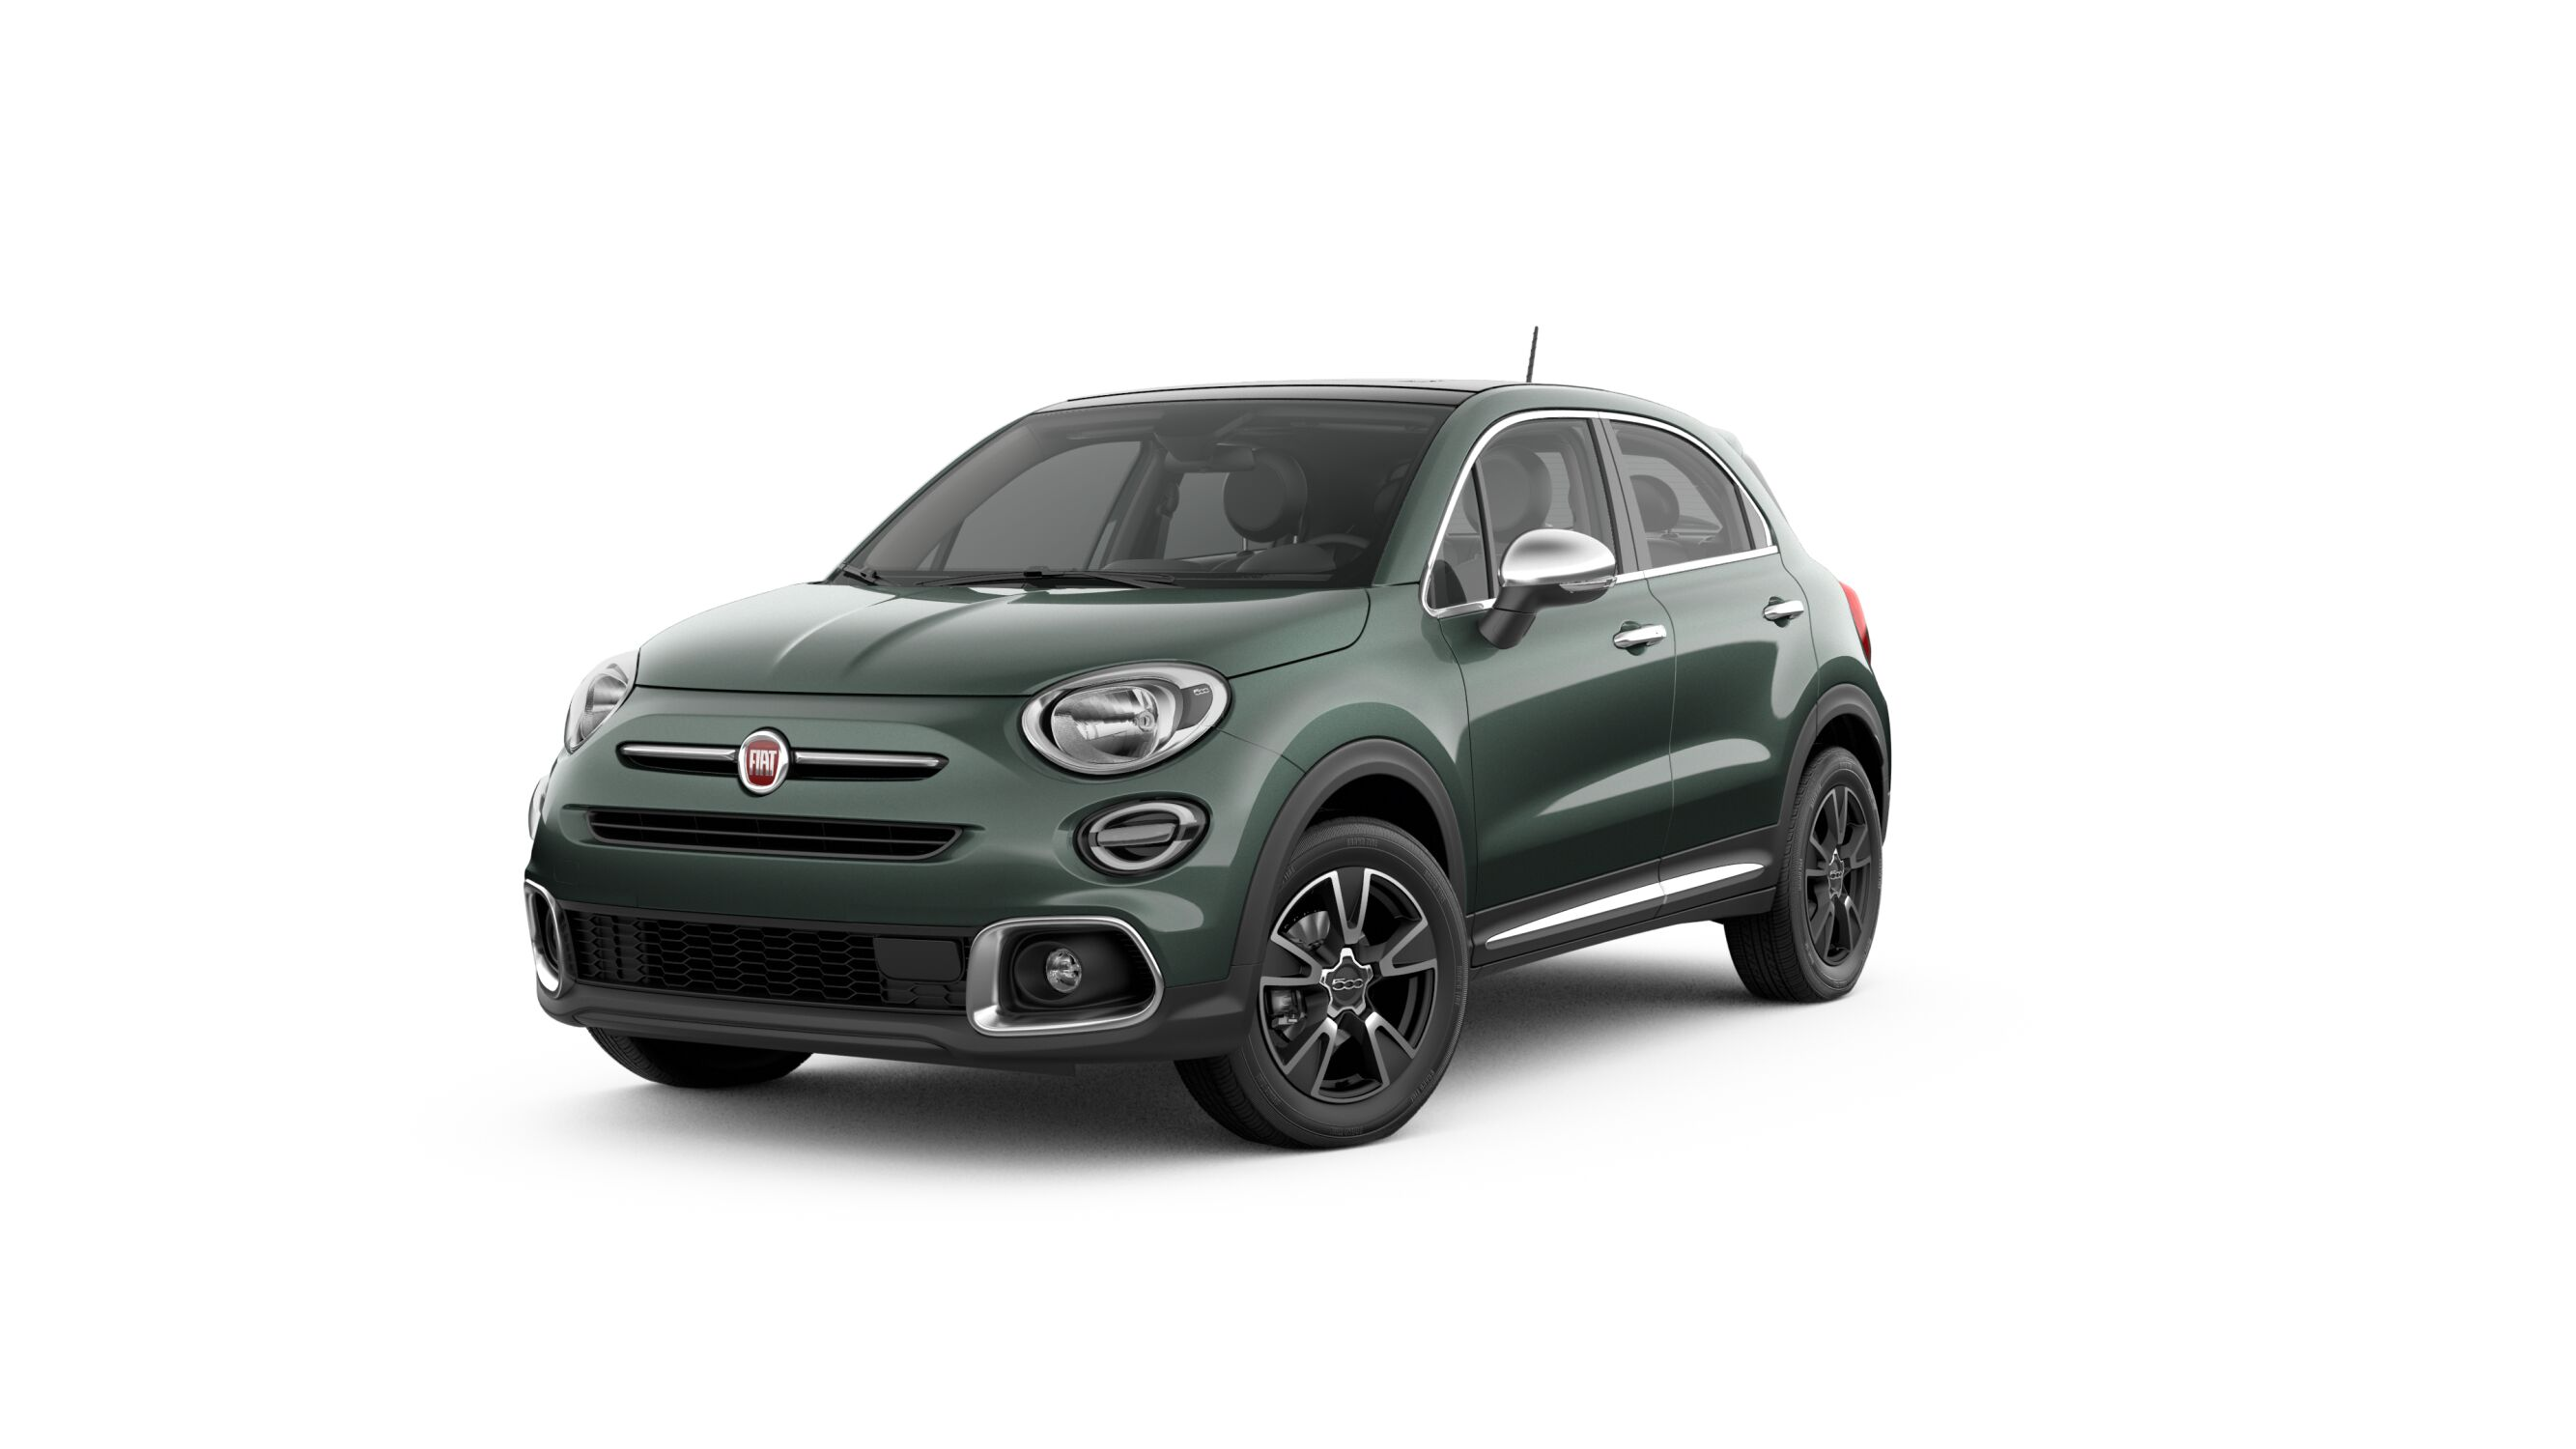 2019 Fiat 500X Blue Sky Edition Specs And Overview